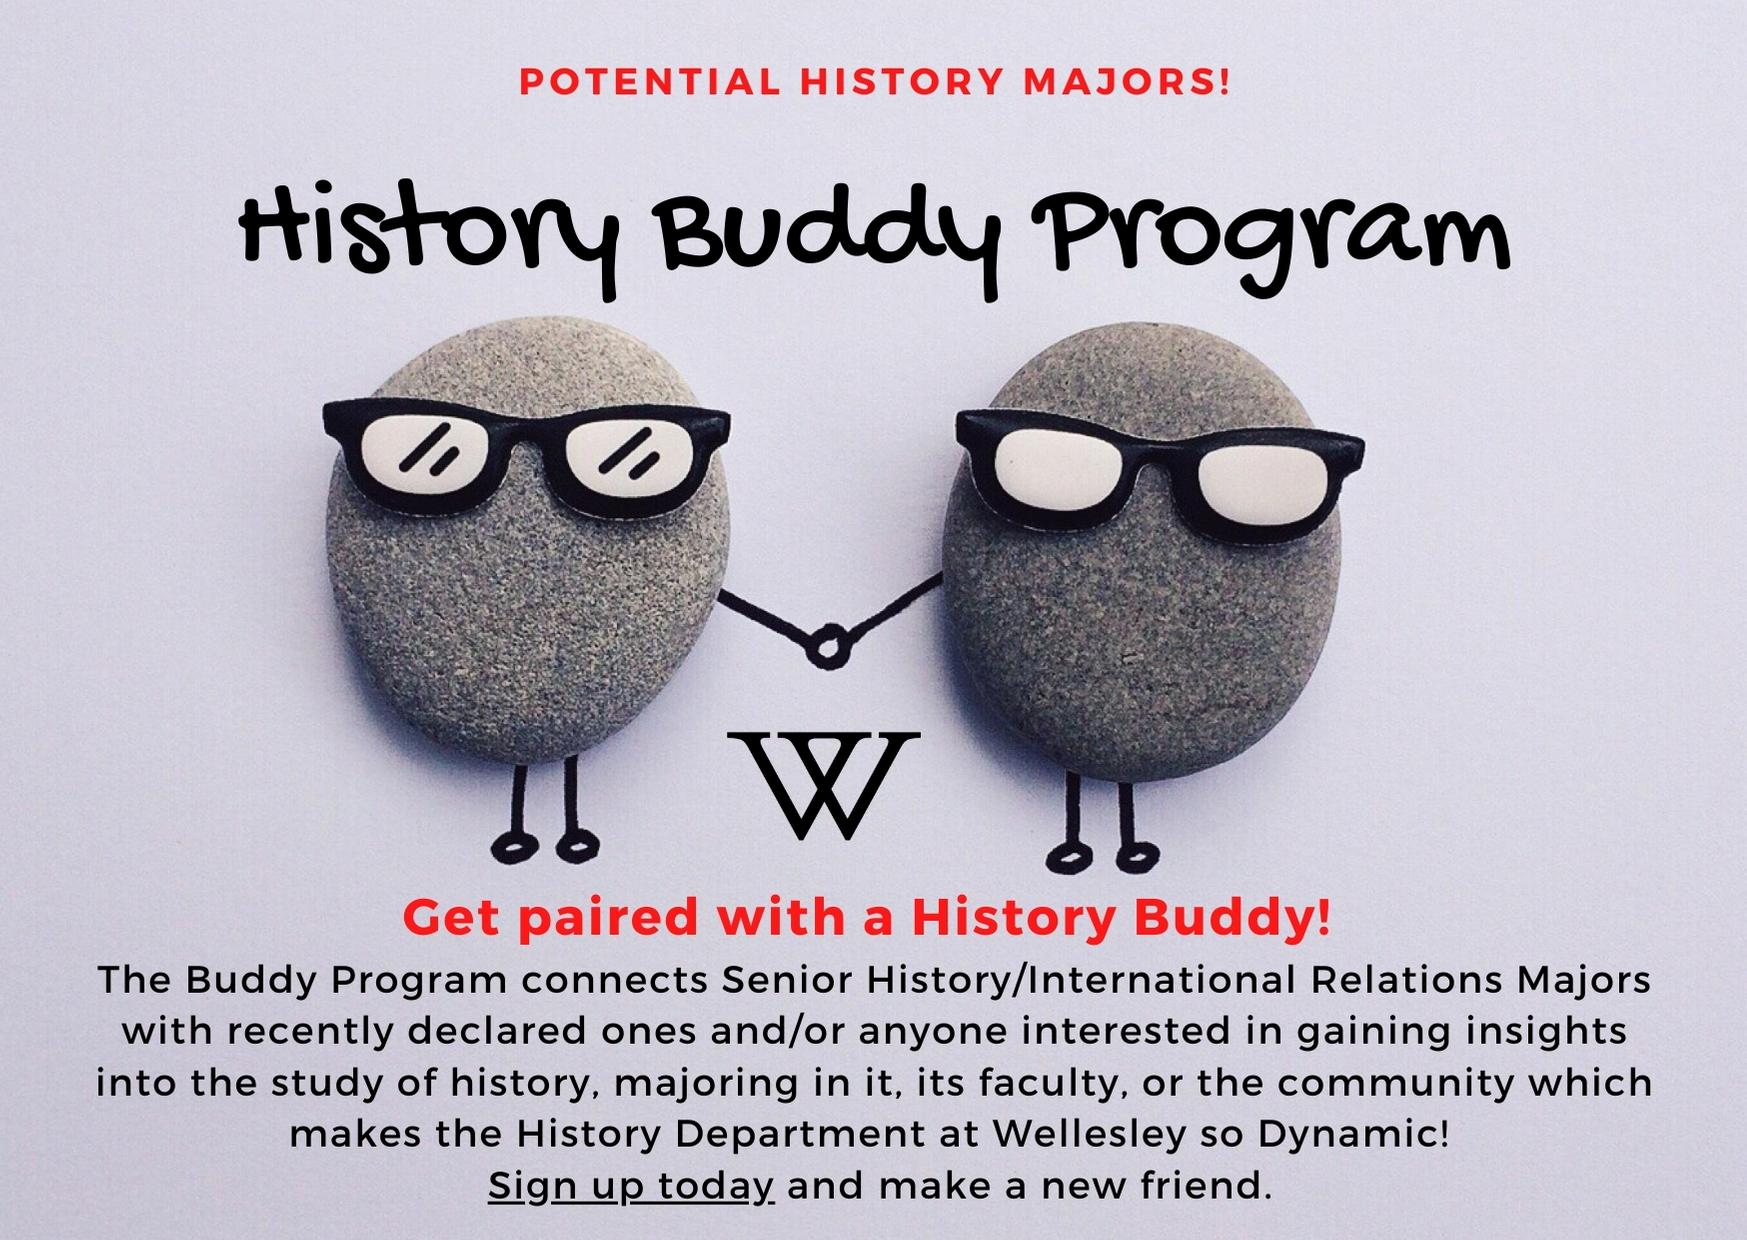 History Buddy Program